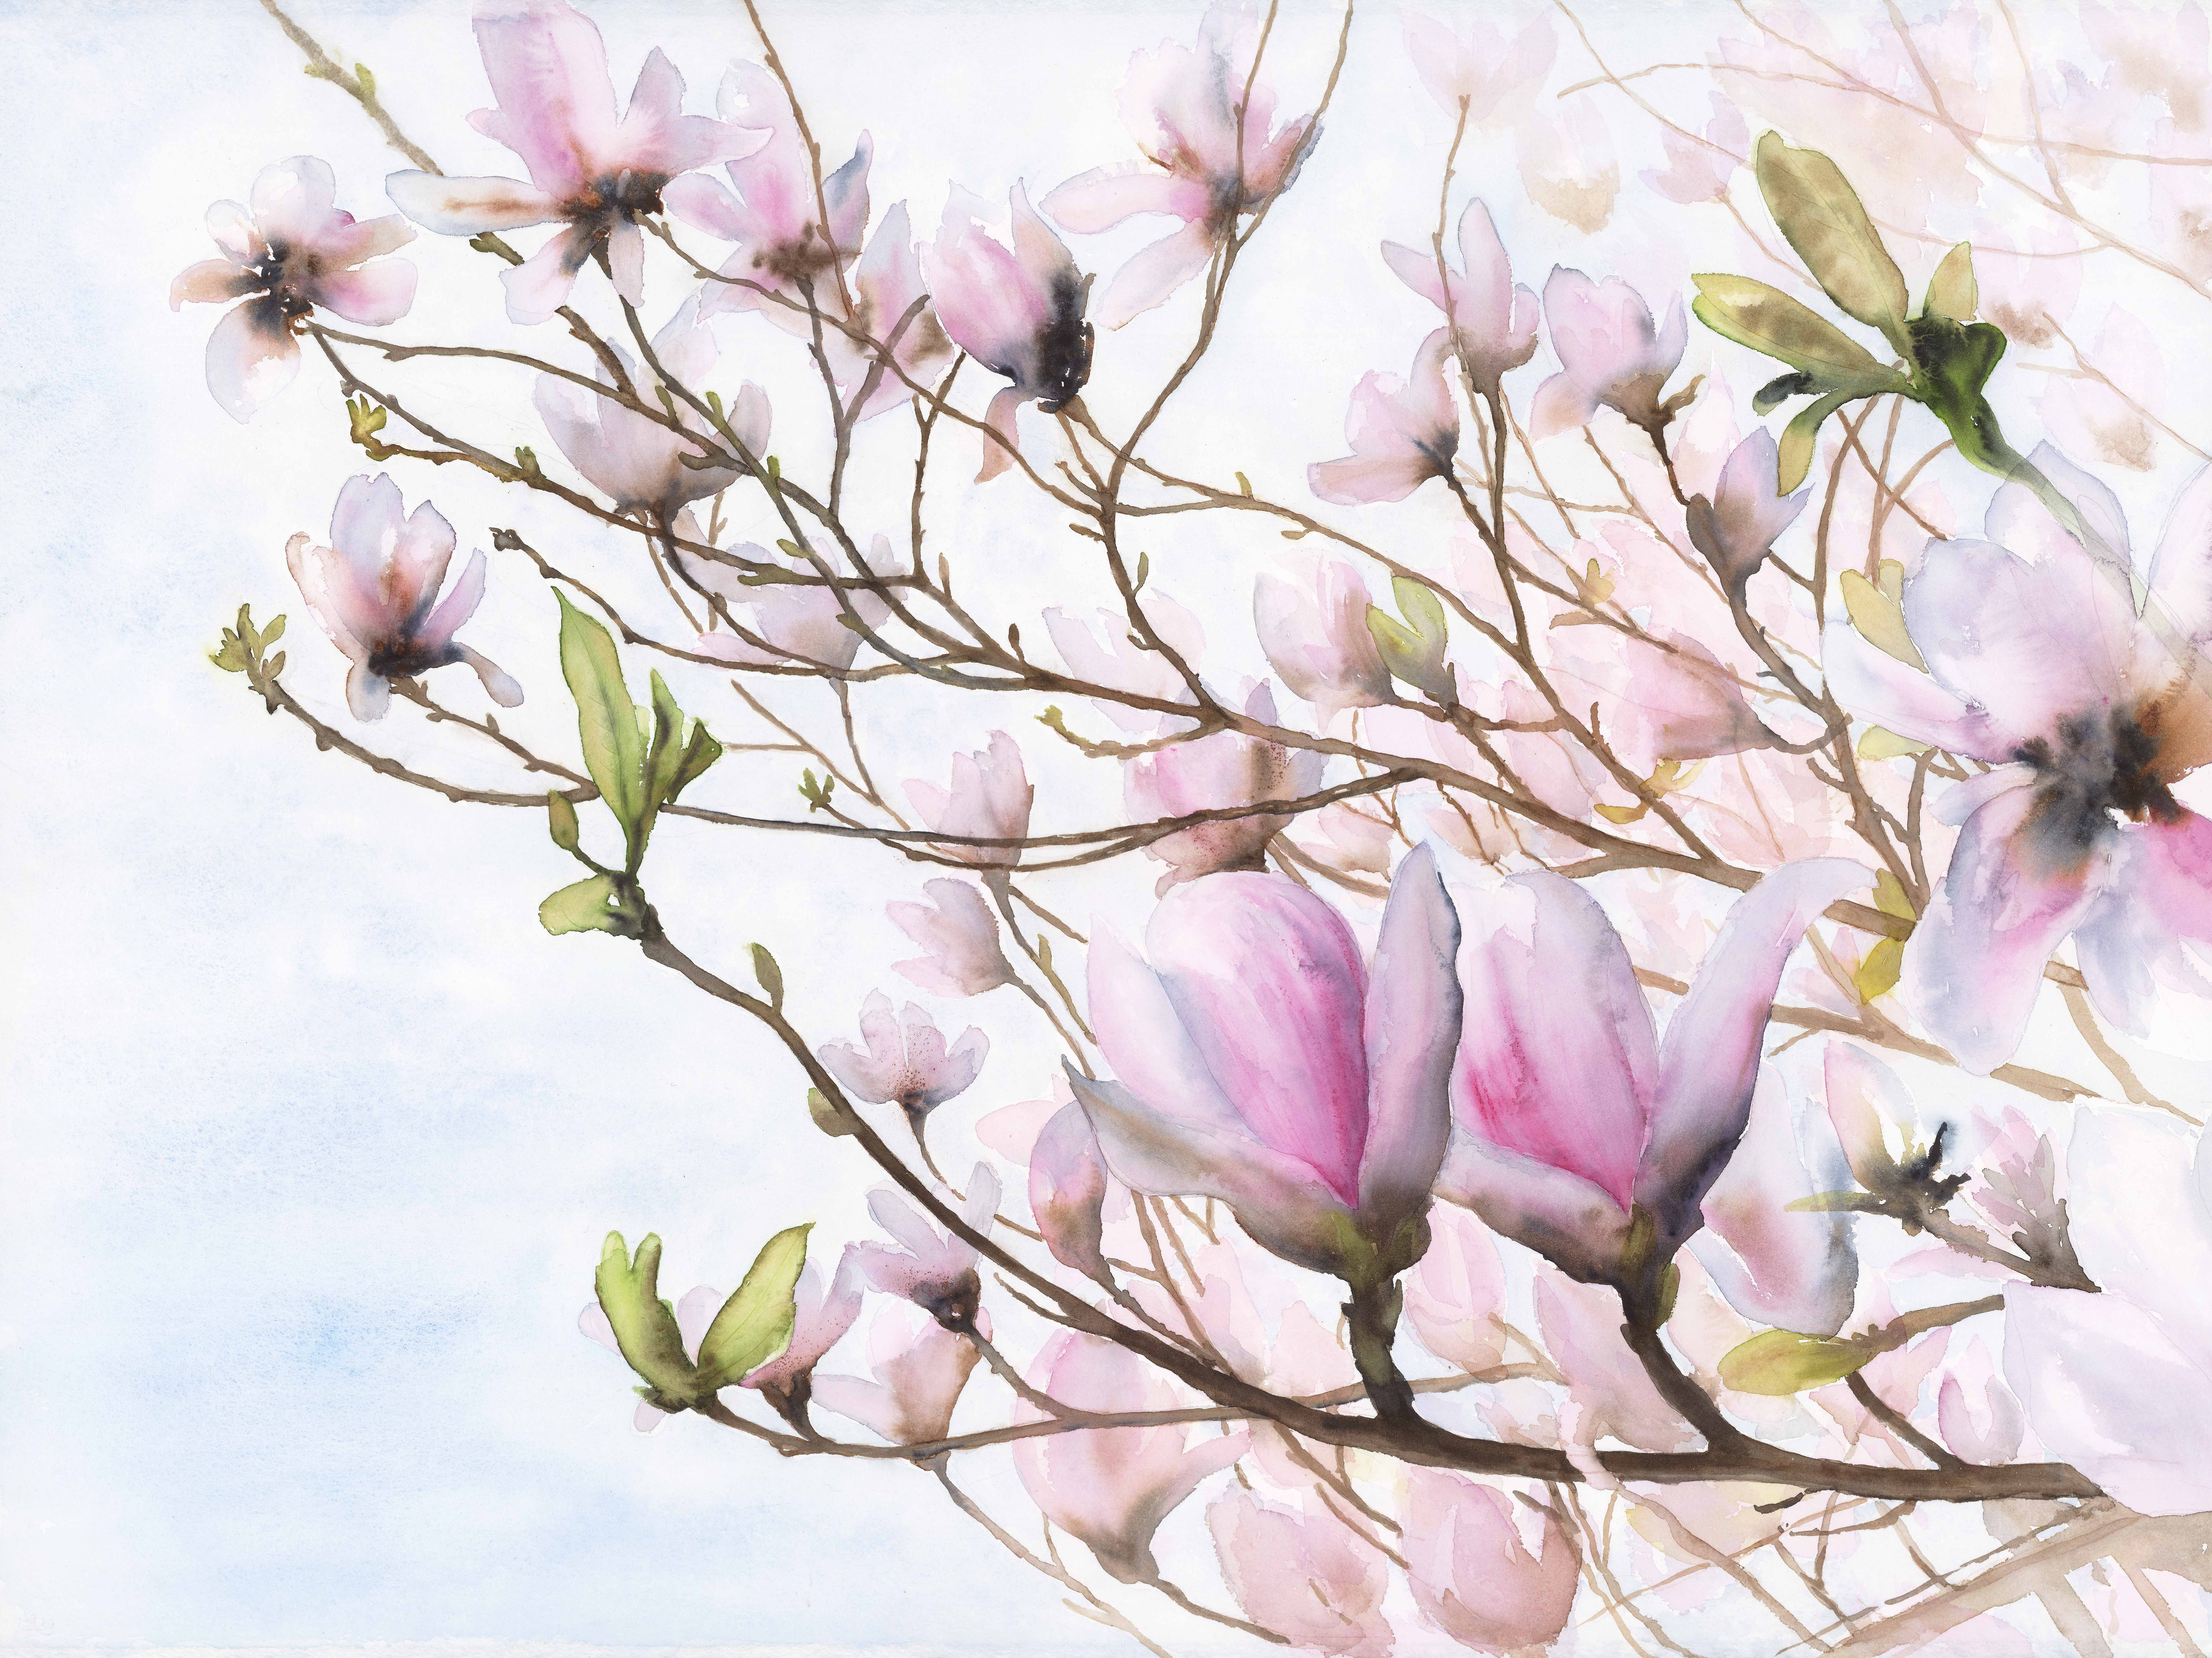 Magnolia Take Flight